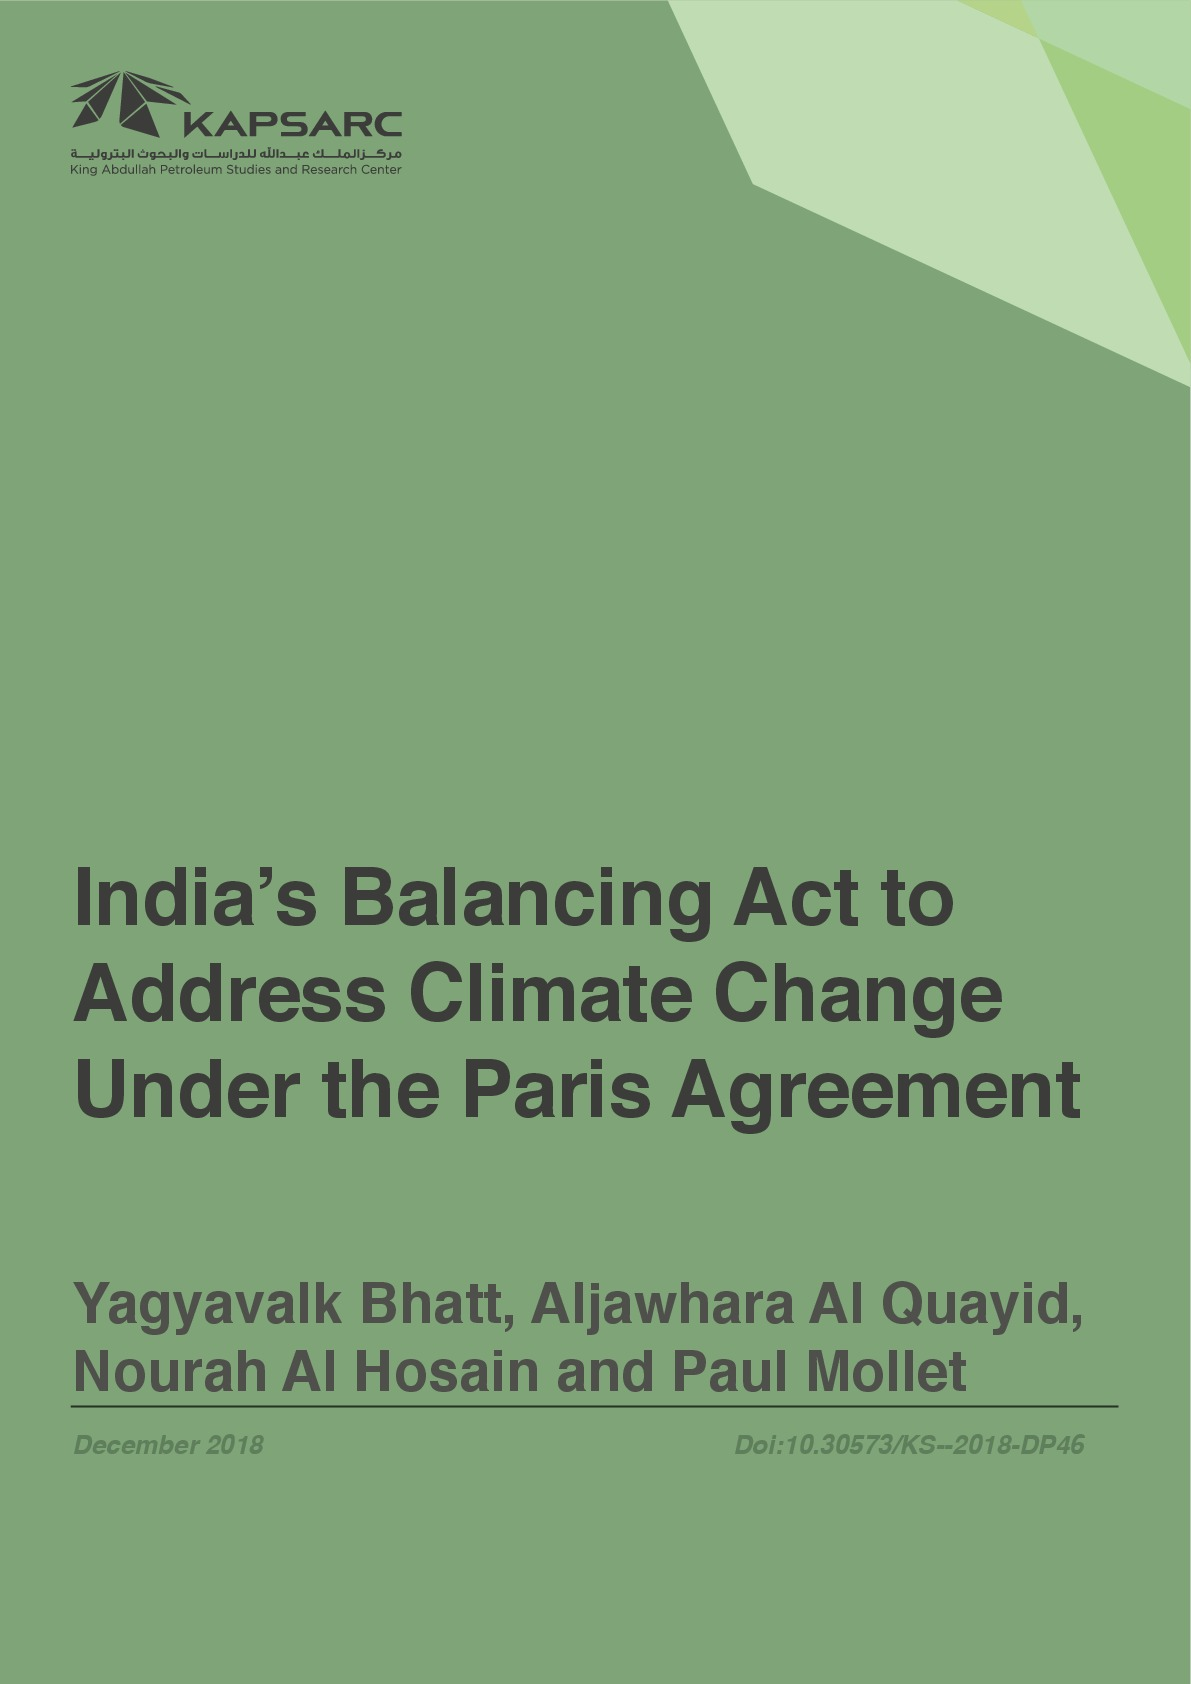 India's Balancing Act to Address Climate Change Under the Paris Agreement